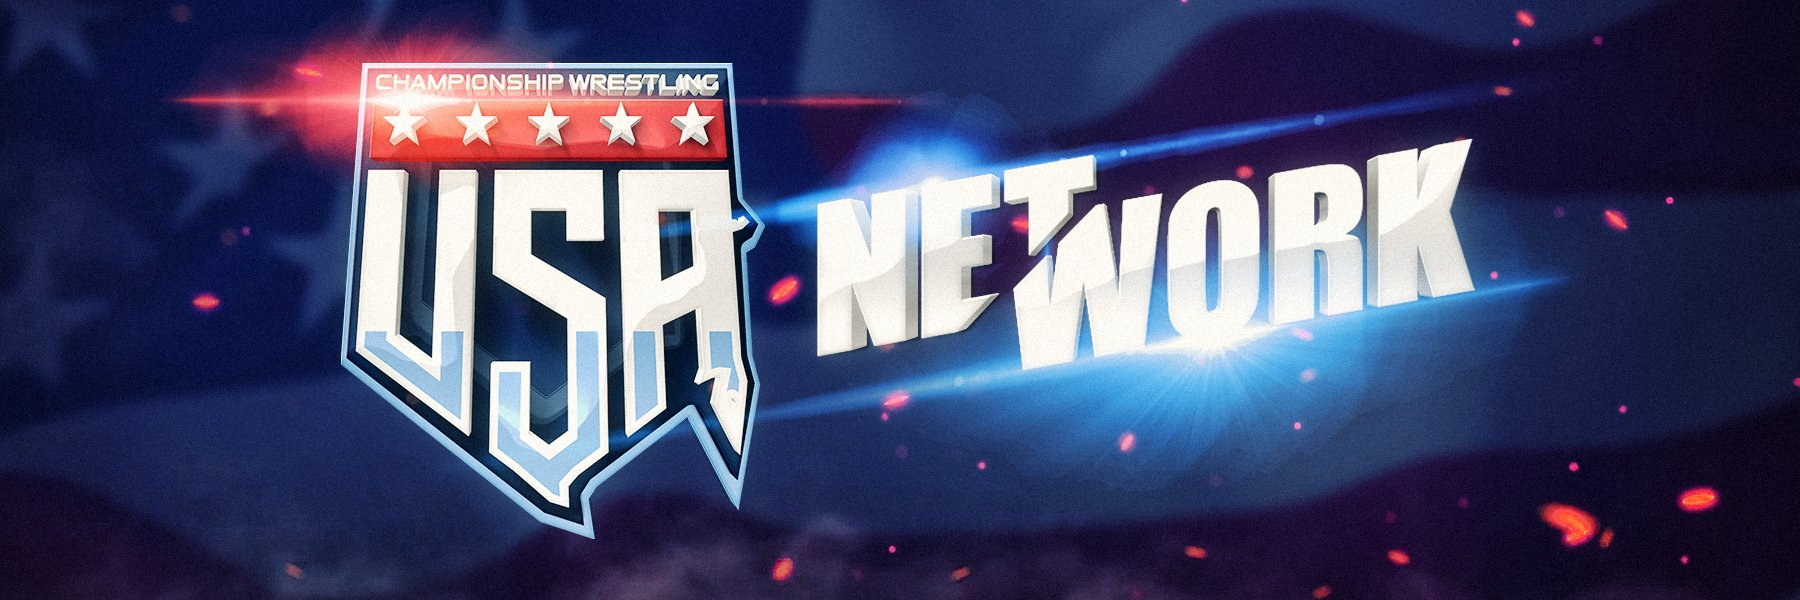 USA Wrestling Network